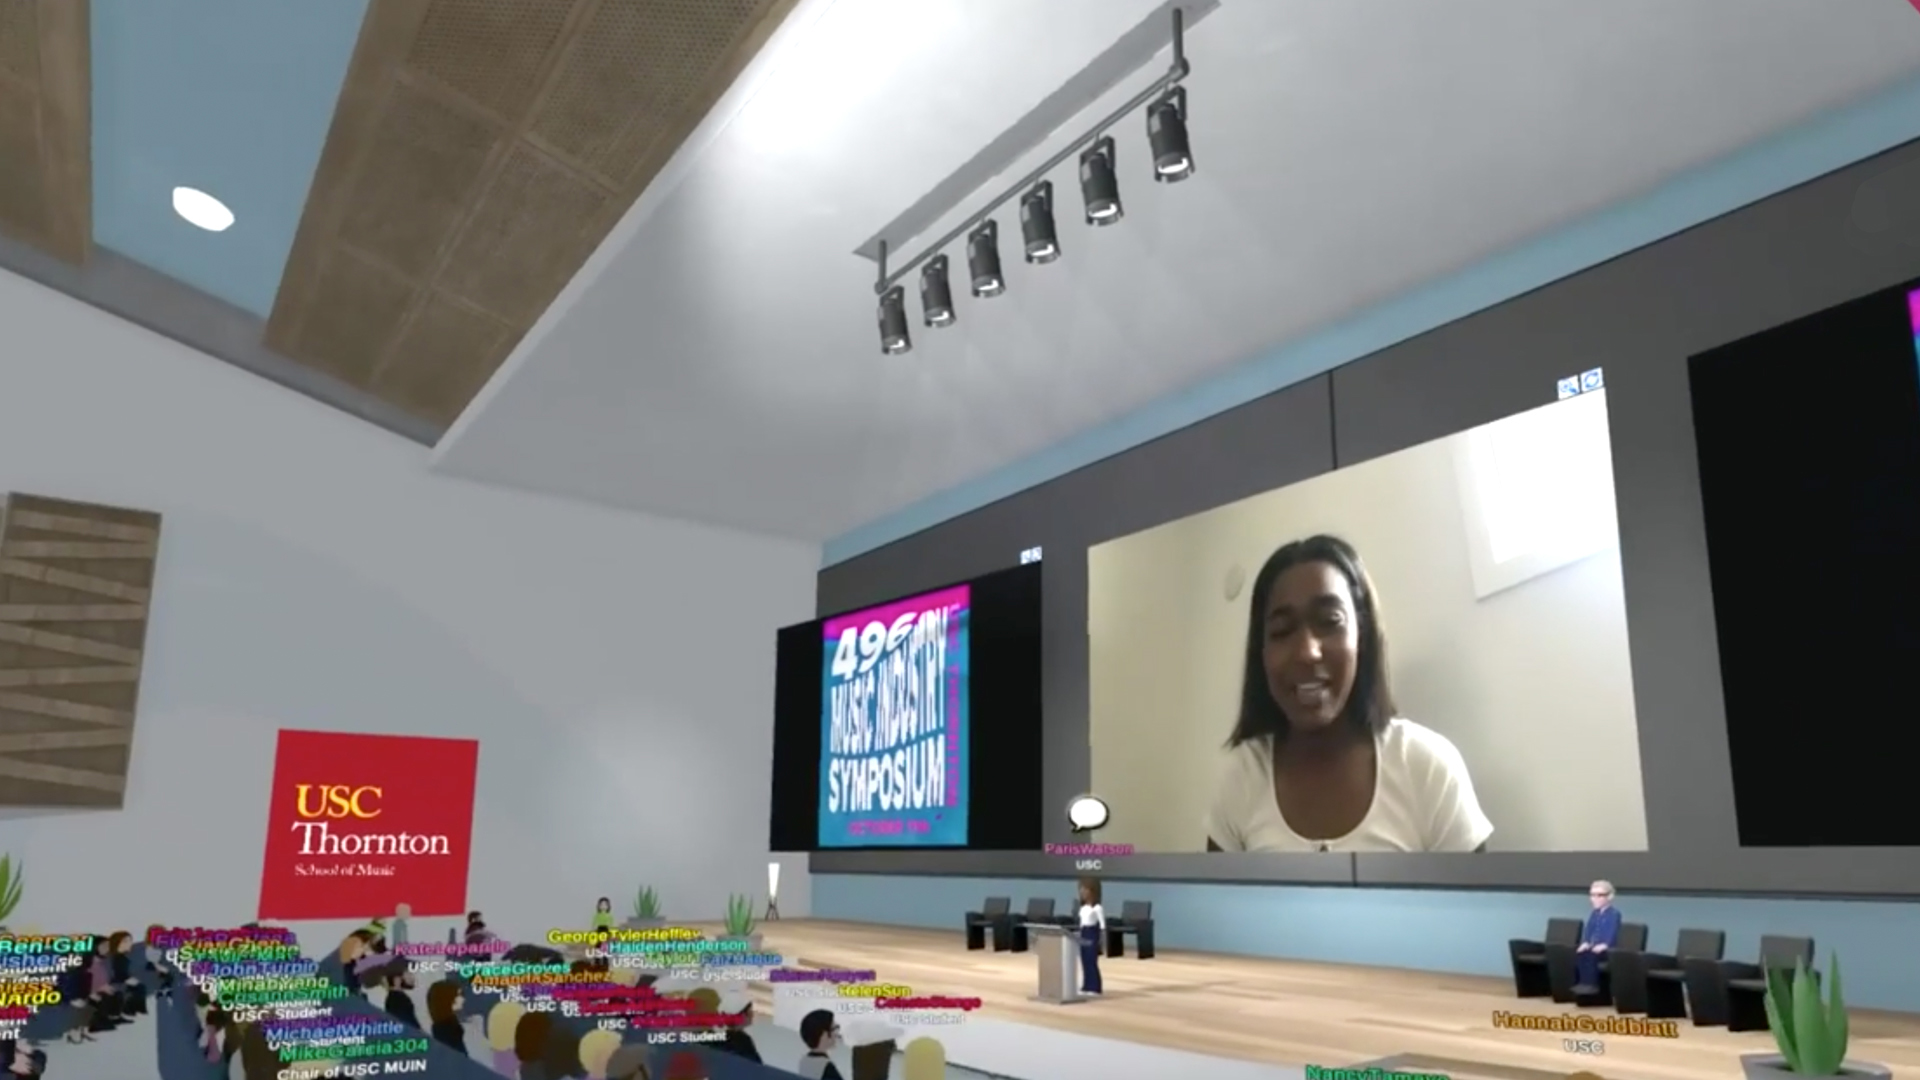 A view of an animated online classroom space, with a live video feed visible through an animated projector